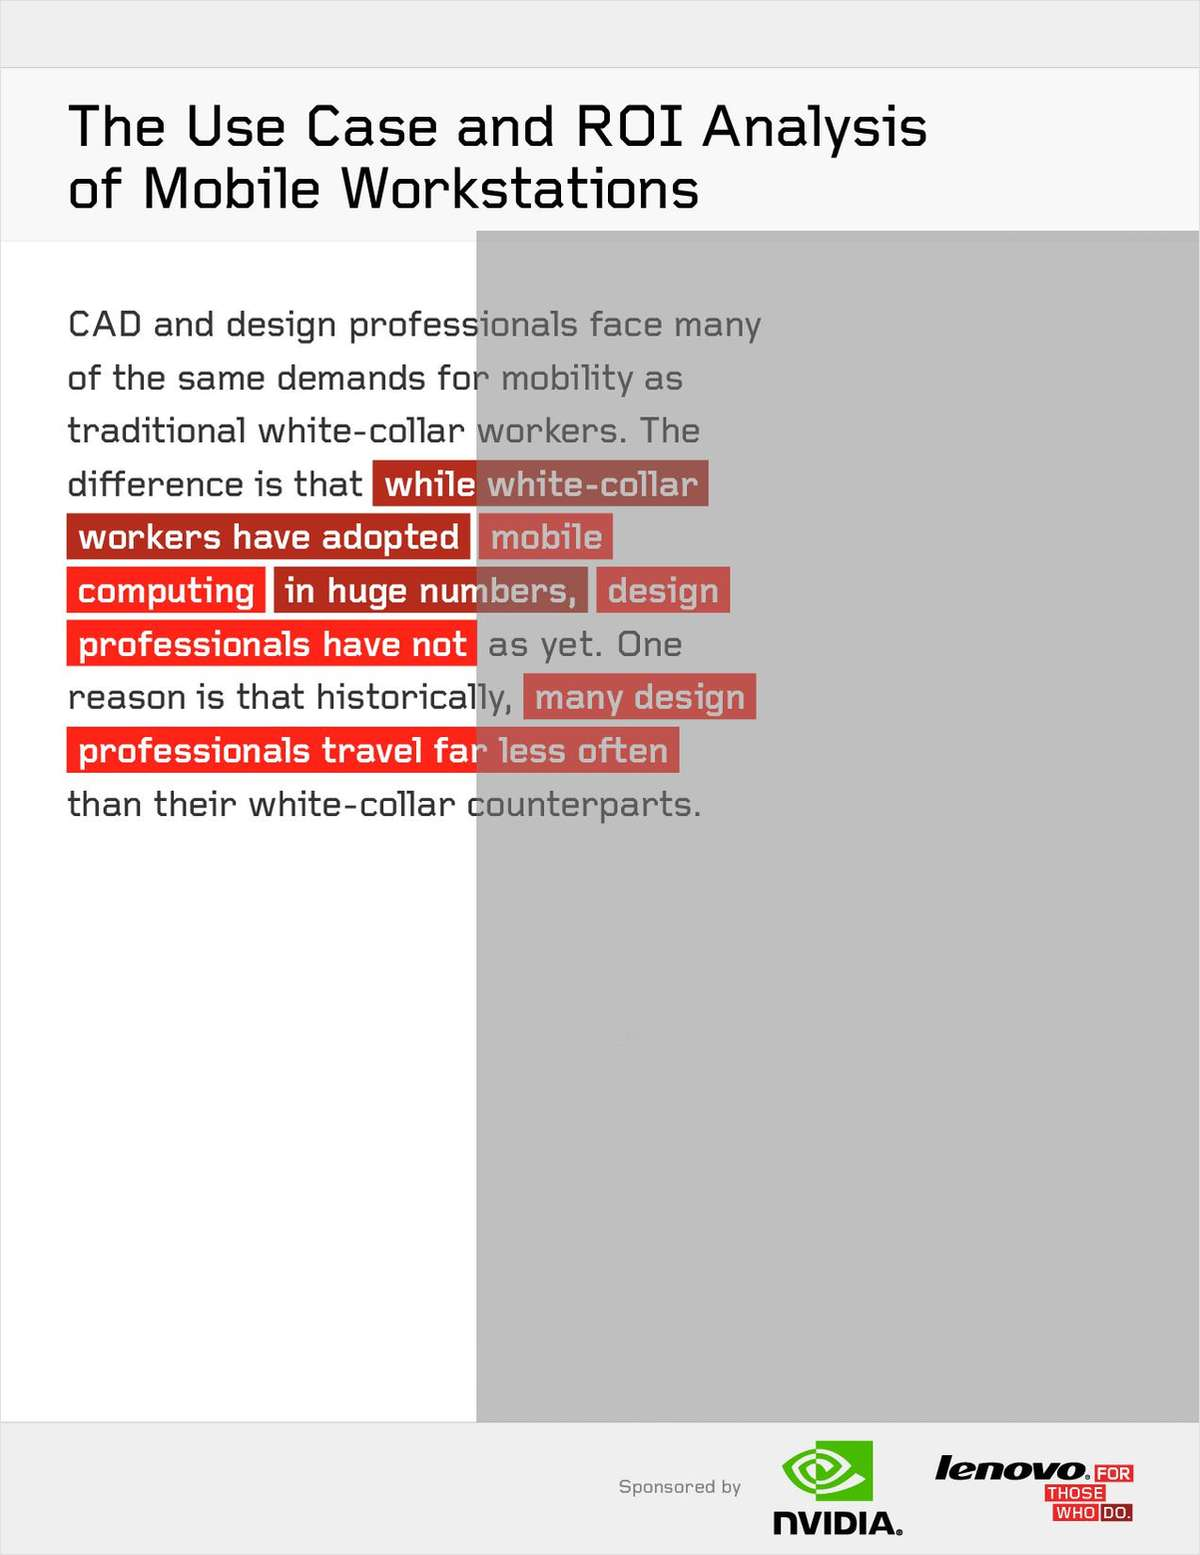 The Use Case and ROI Analysis of Mobile Workstations